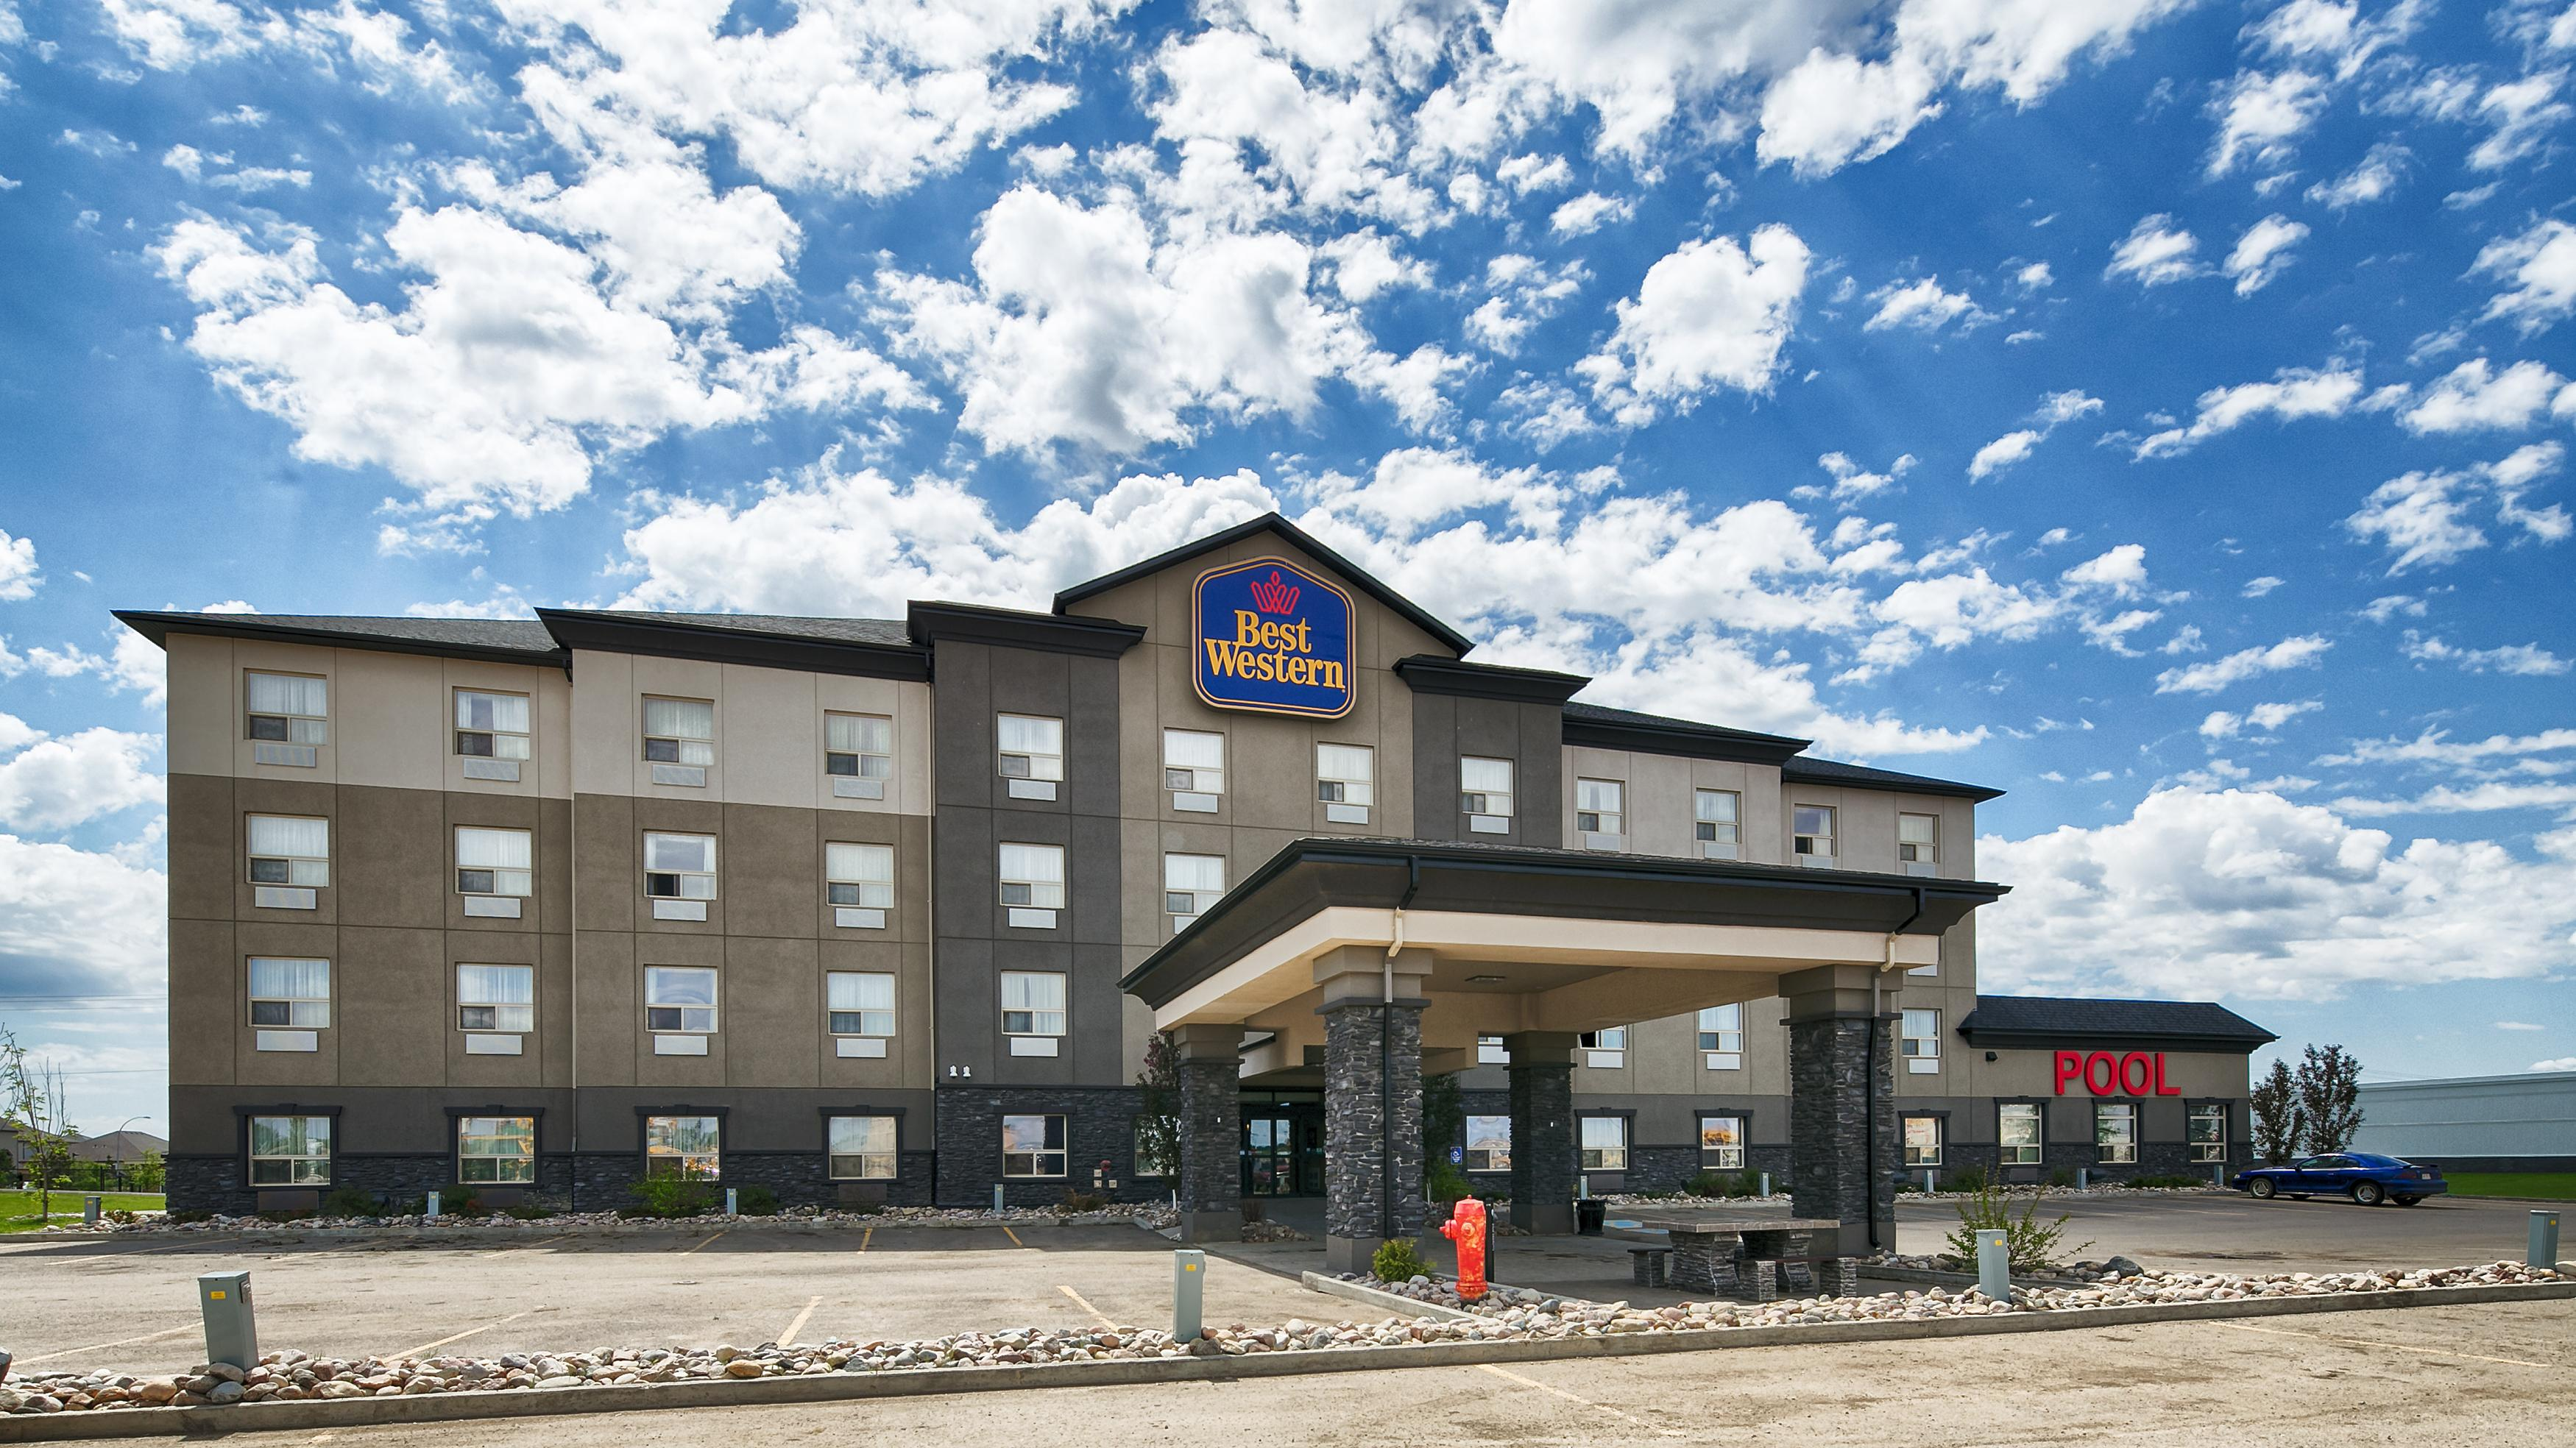 BEST WESTERN Wainwright Inn & Suites